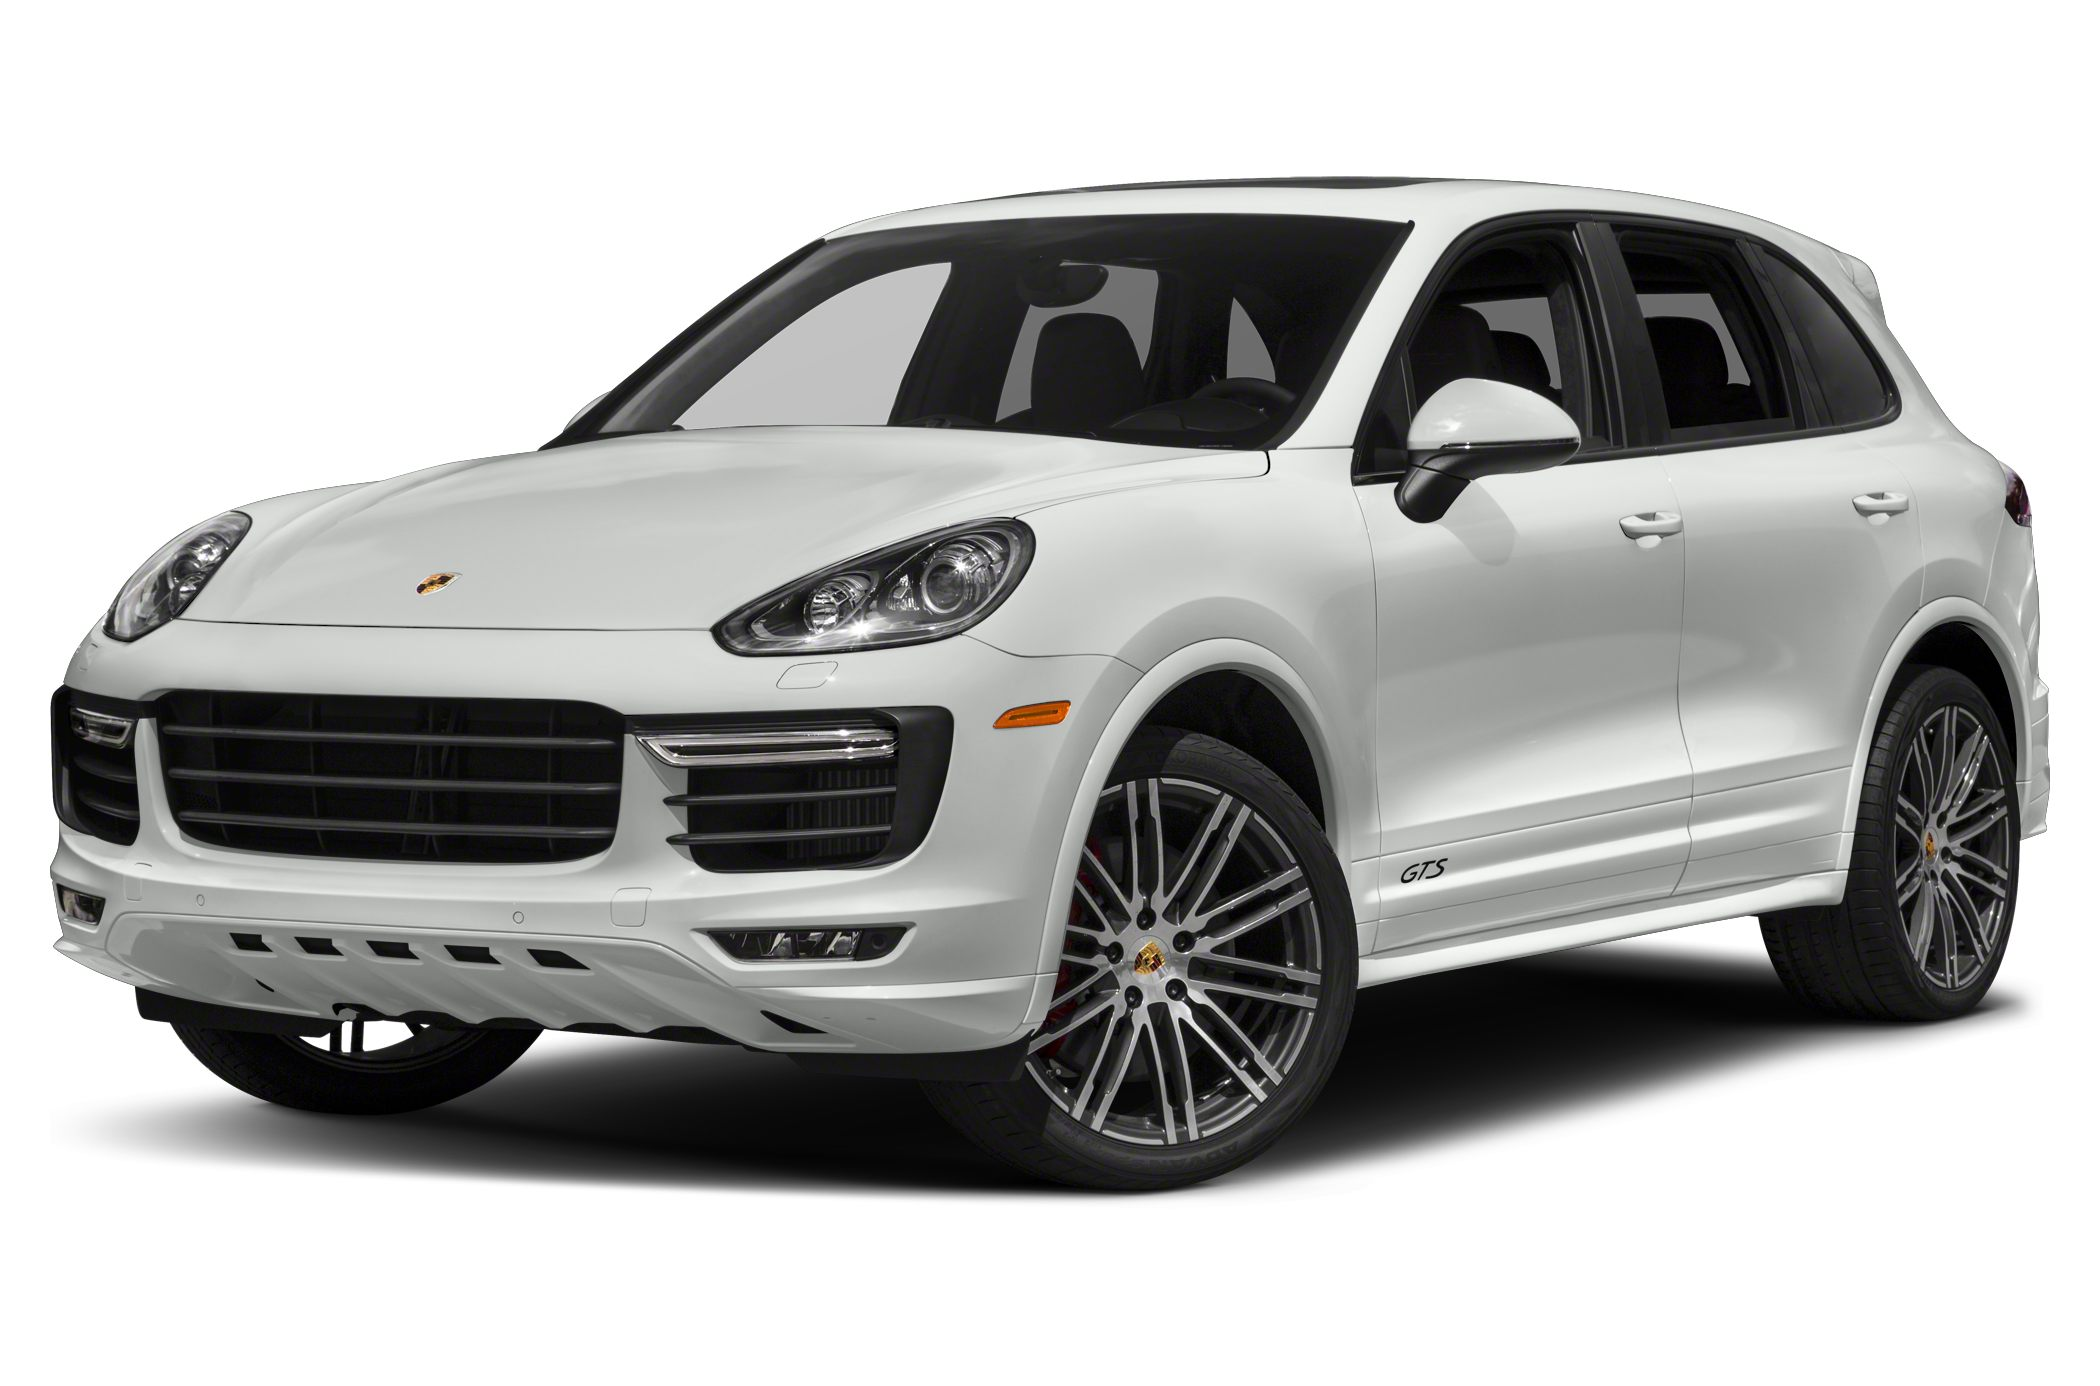 2018 Porsche Cayenne GTS 4dr All,wheel Drive Pictures